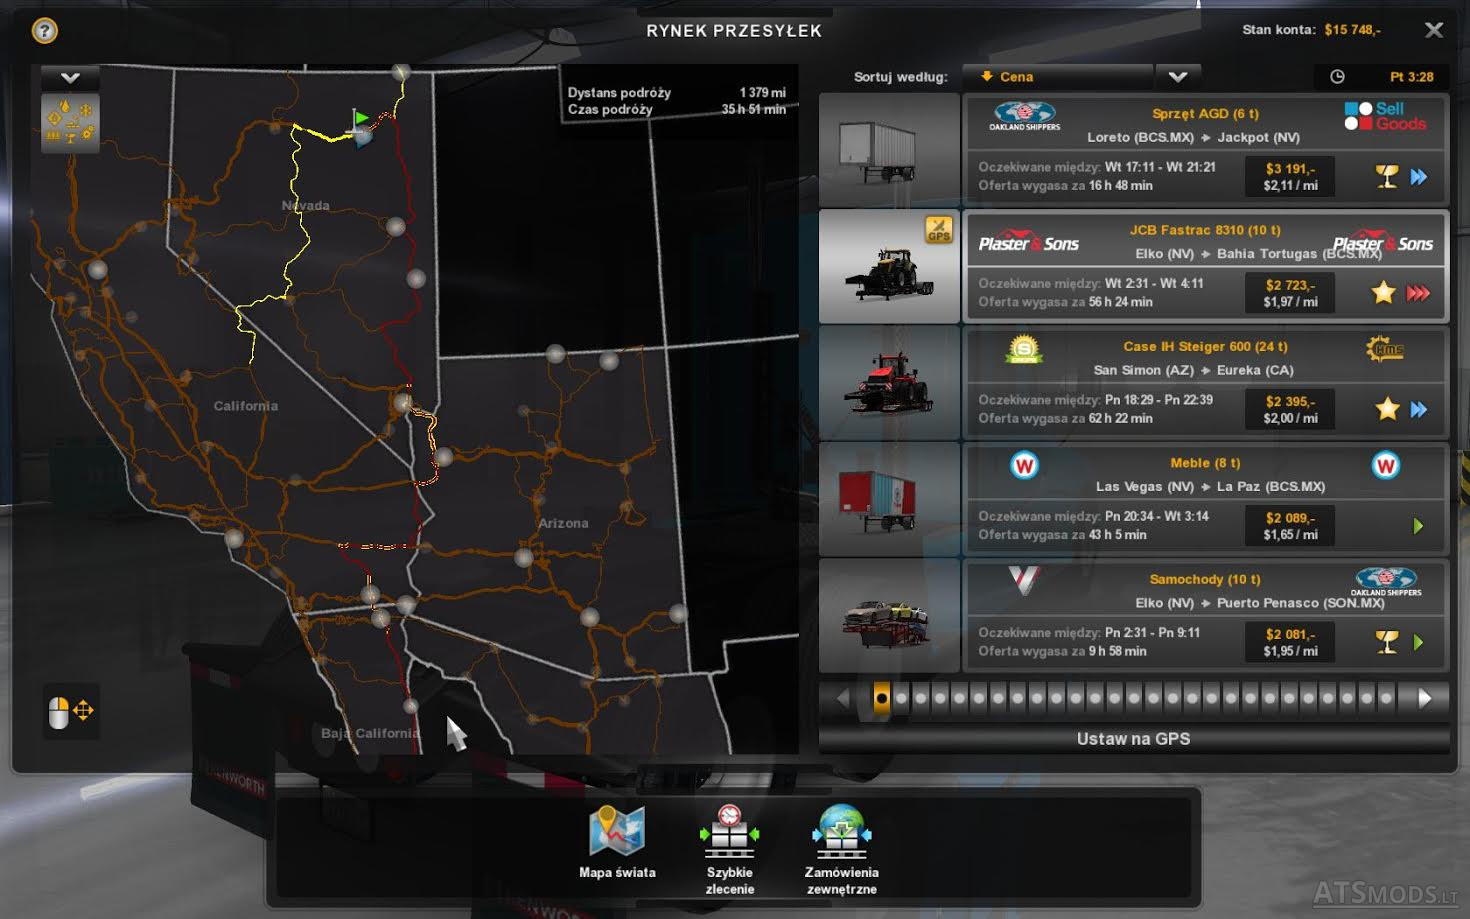 The New Color Of The Road On The Advisers And On The Map Ats